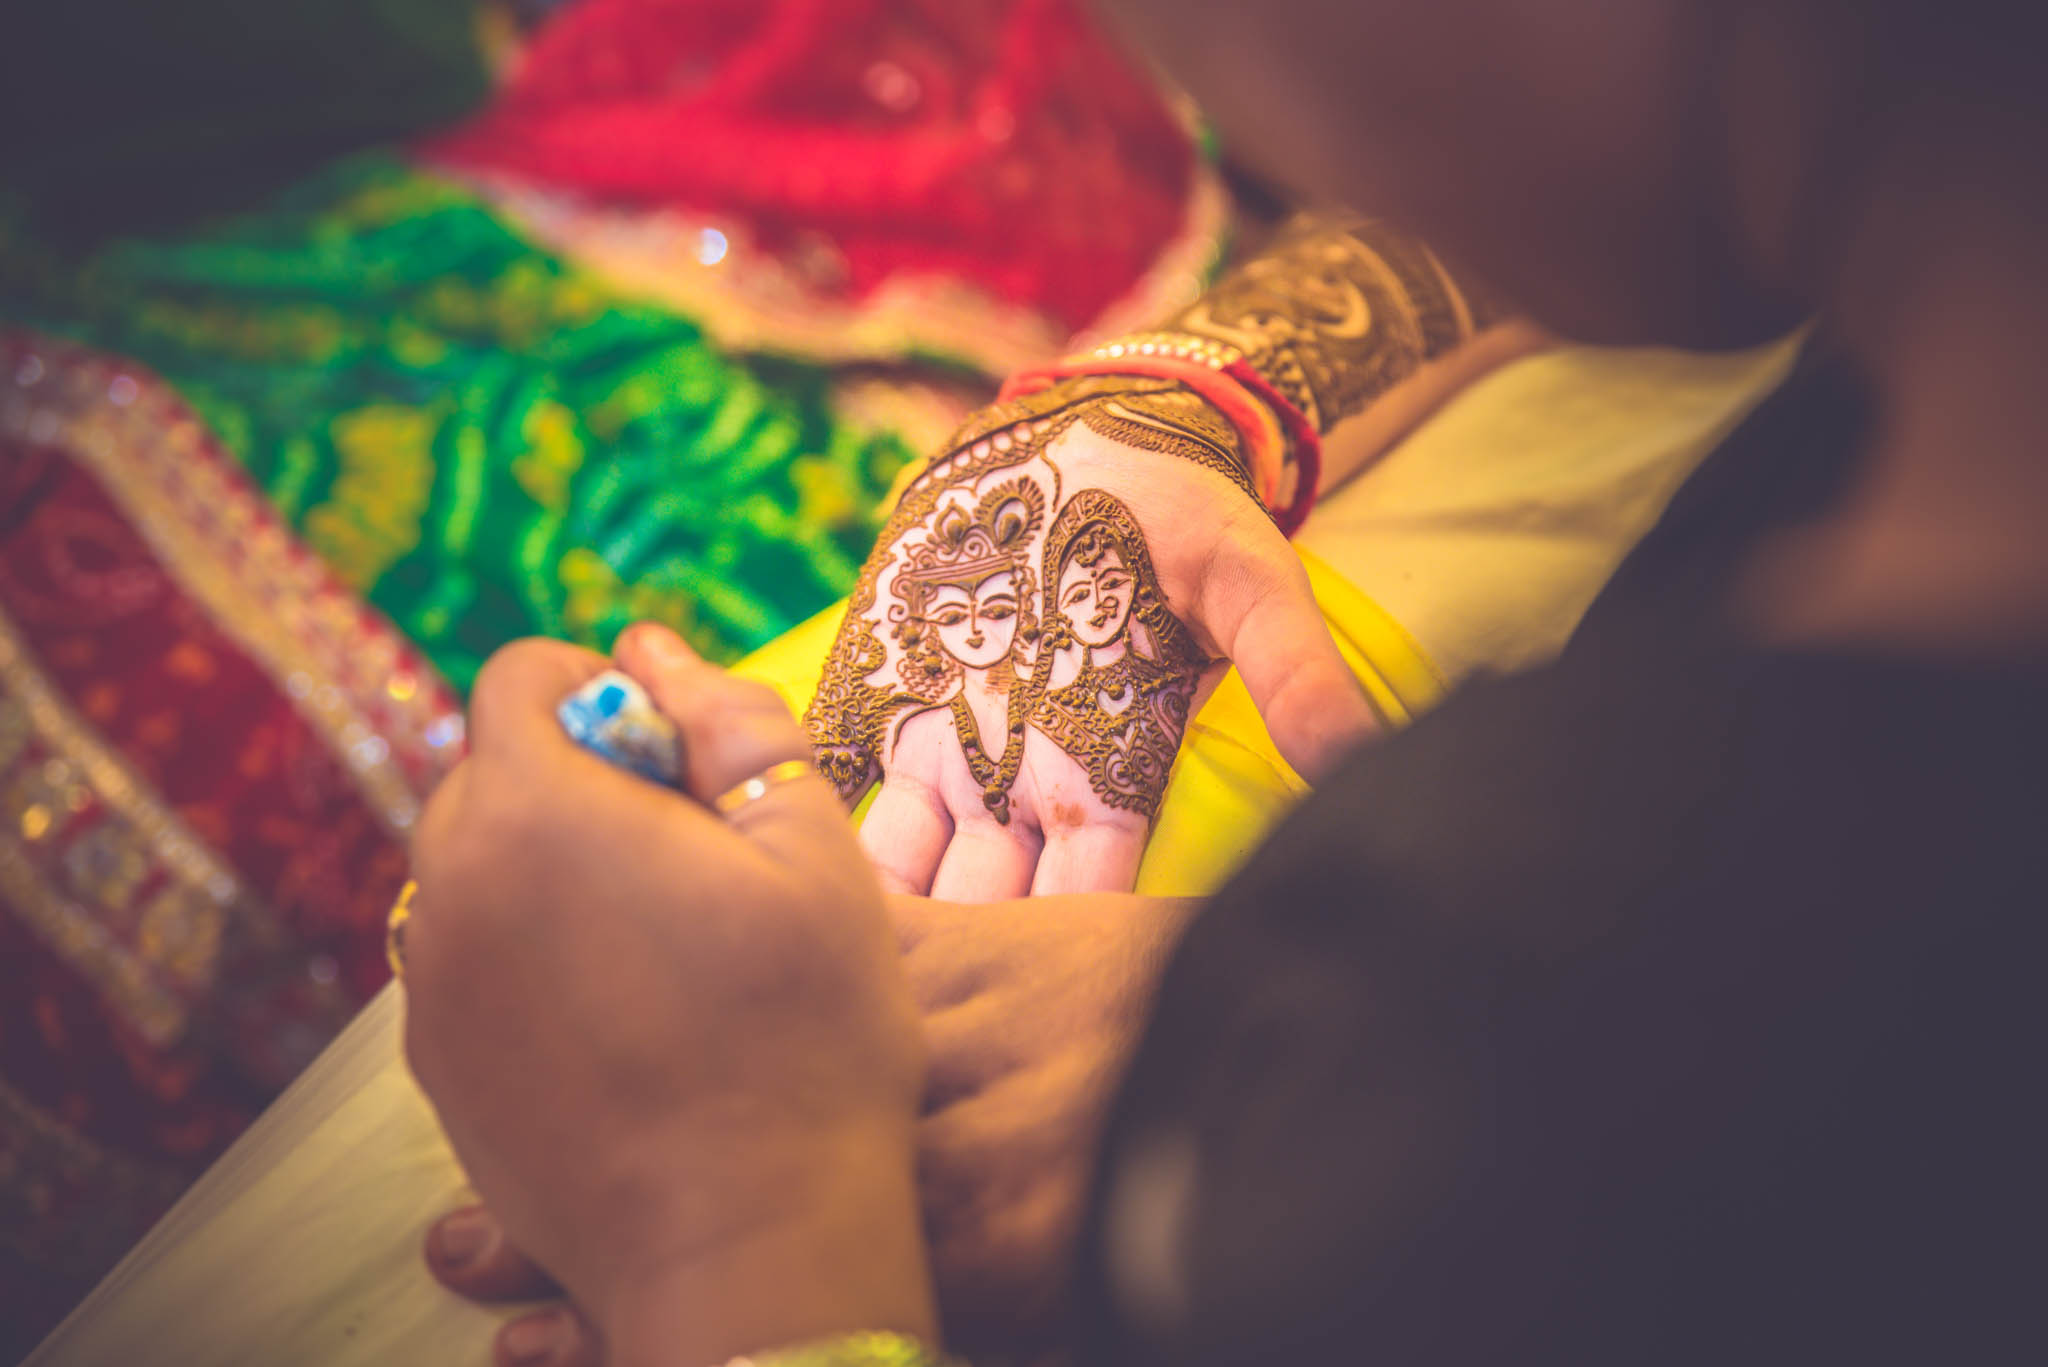 Candid-Wedding-Photography-Nagpur-Destination-22